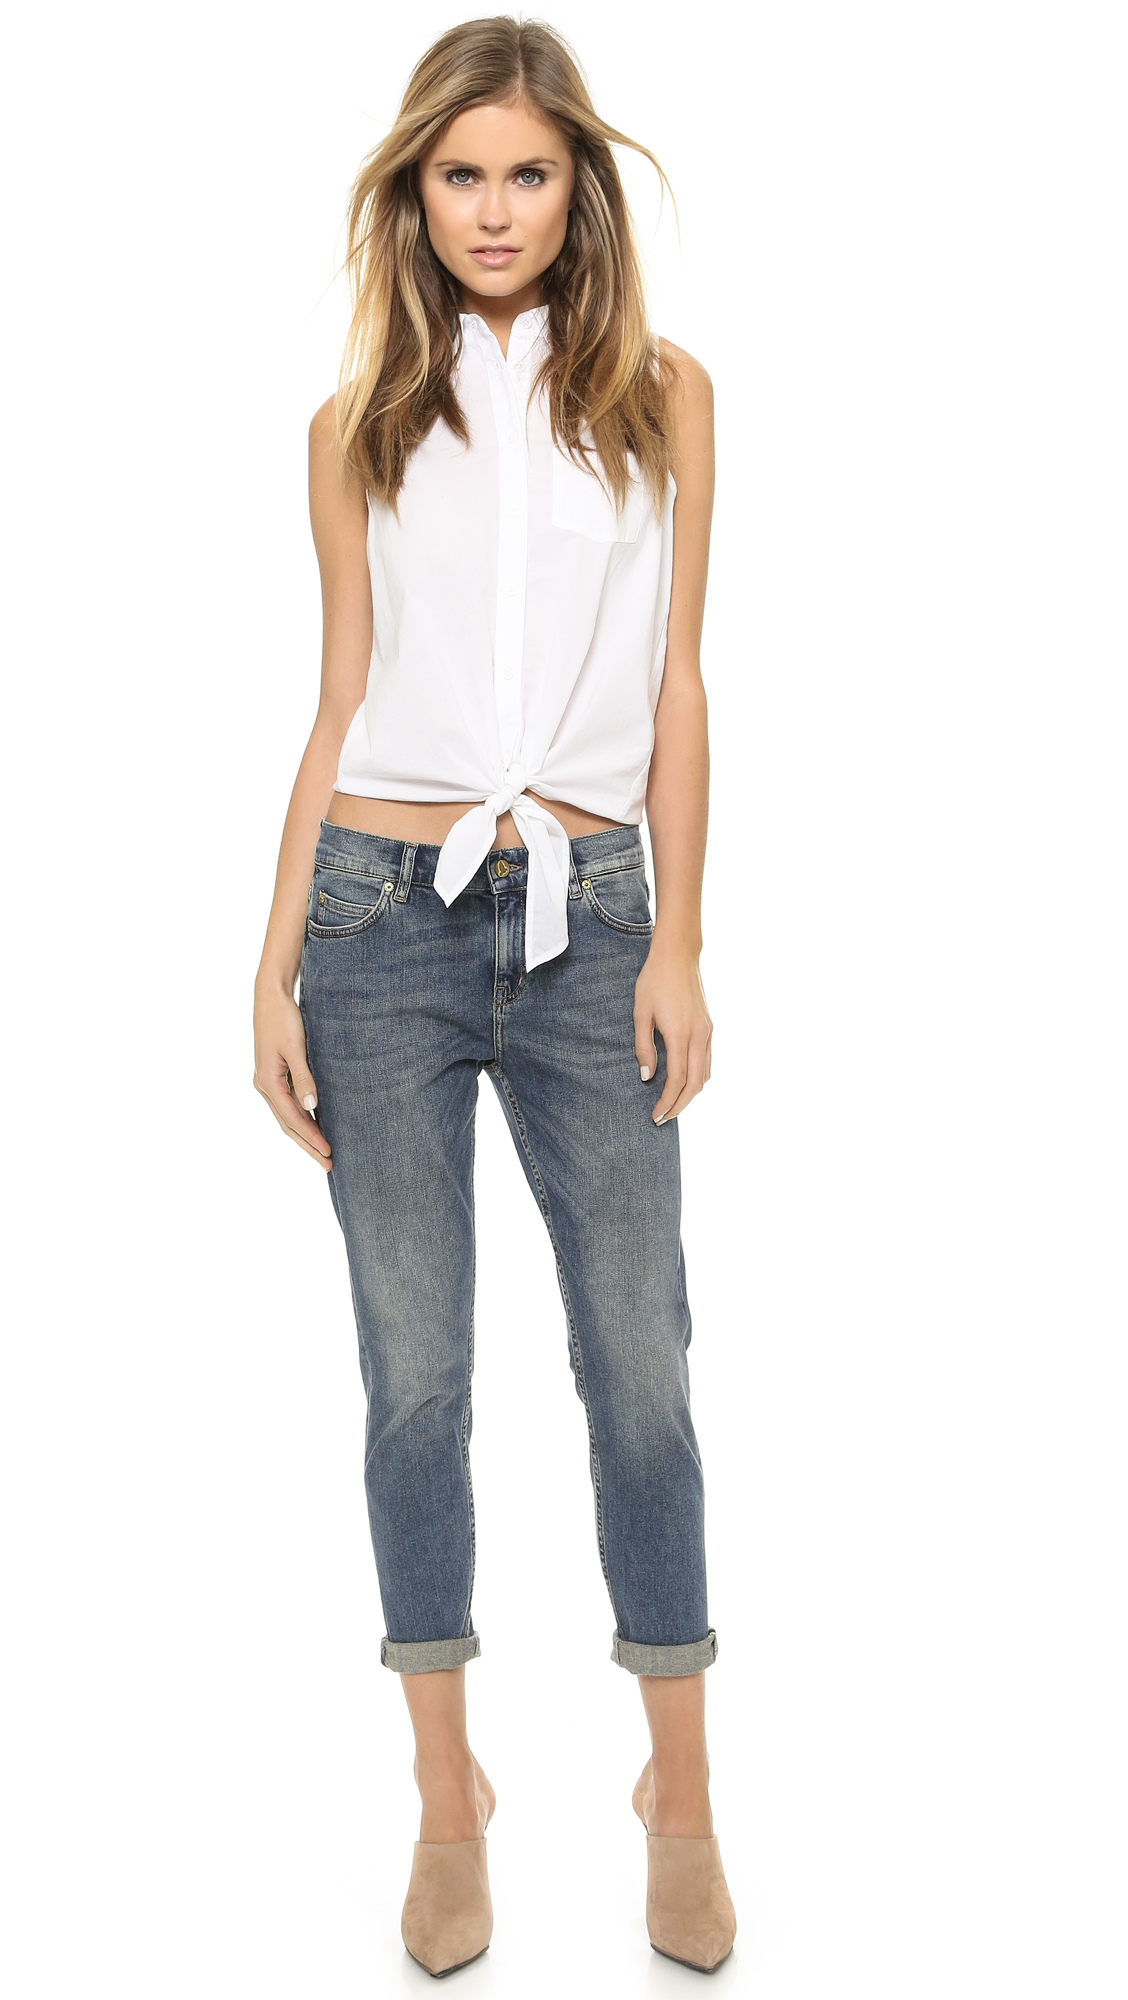 M.i.h jeans The Tomboy Cropped Jeans - Gritty Blue in Blue | Lyst